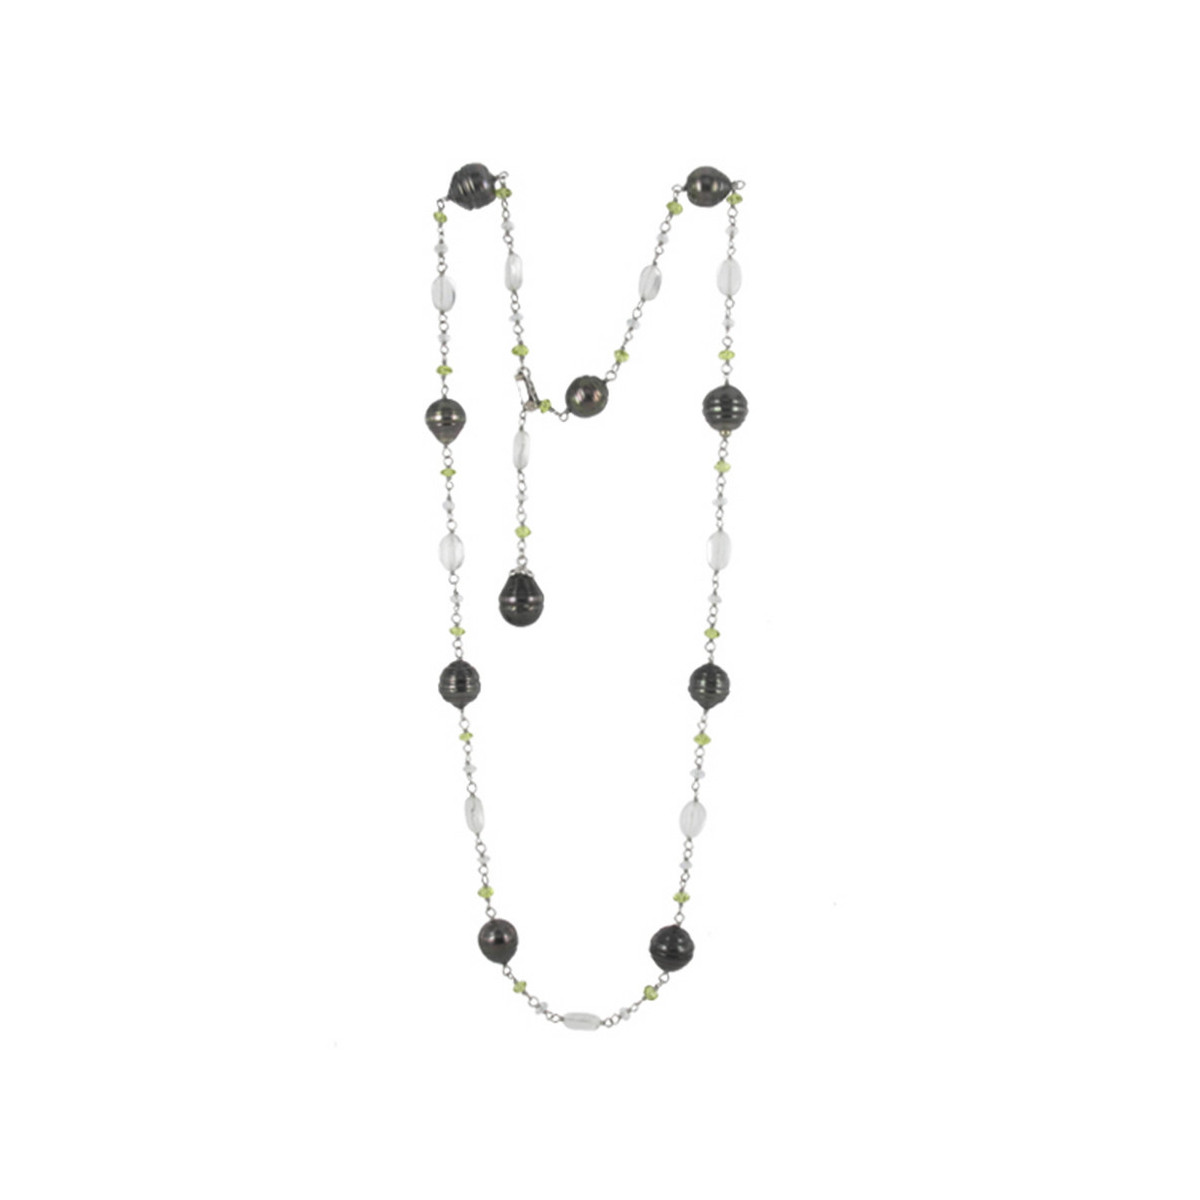 SILVER NECKLACE PEARLS AND NATURAL STONES